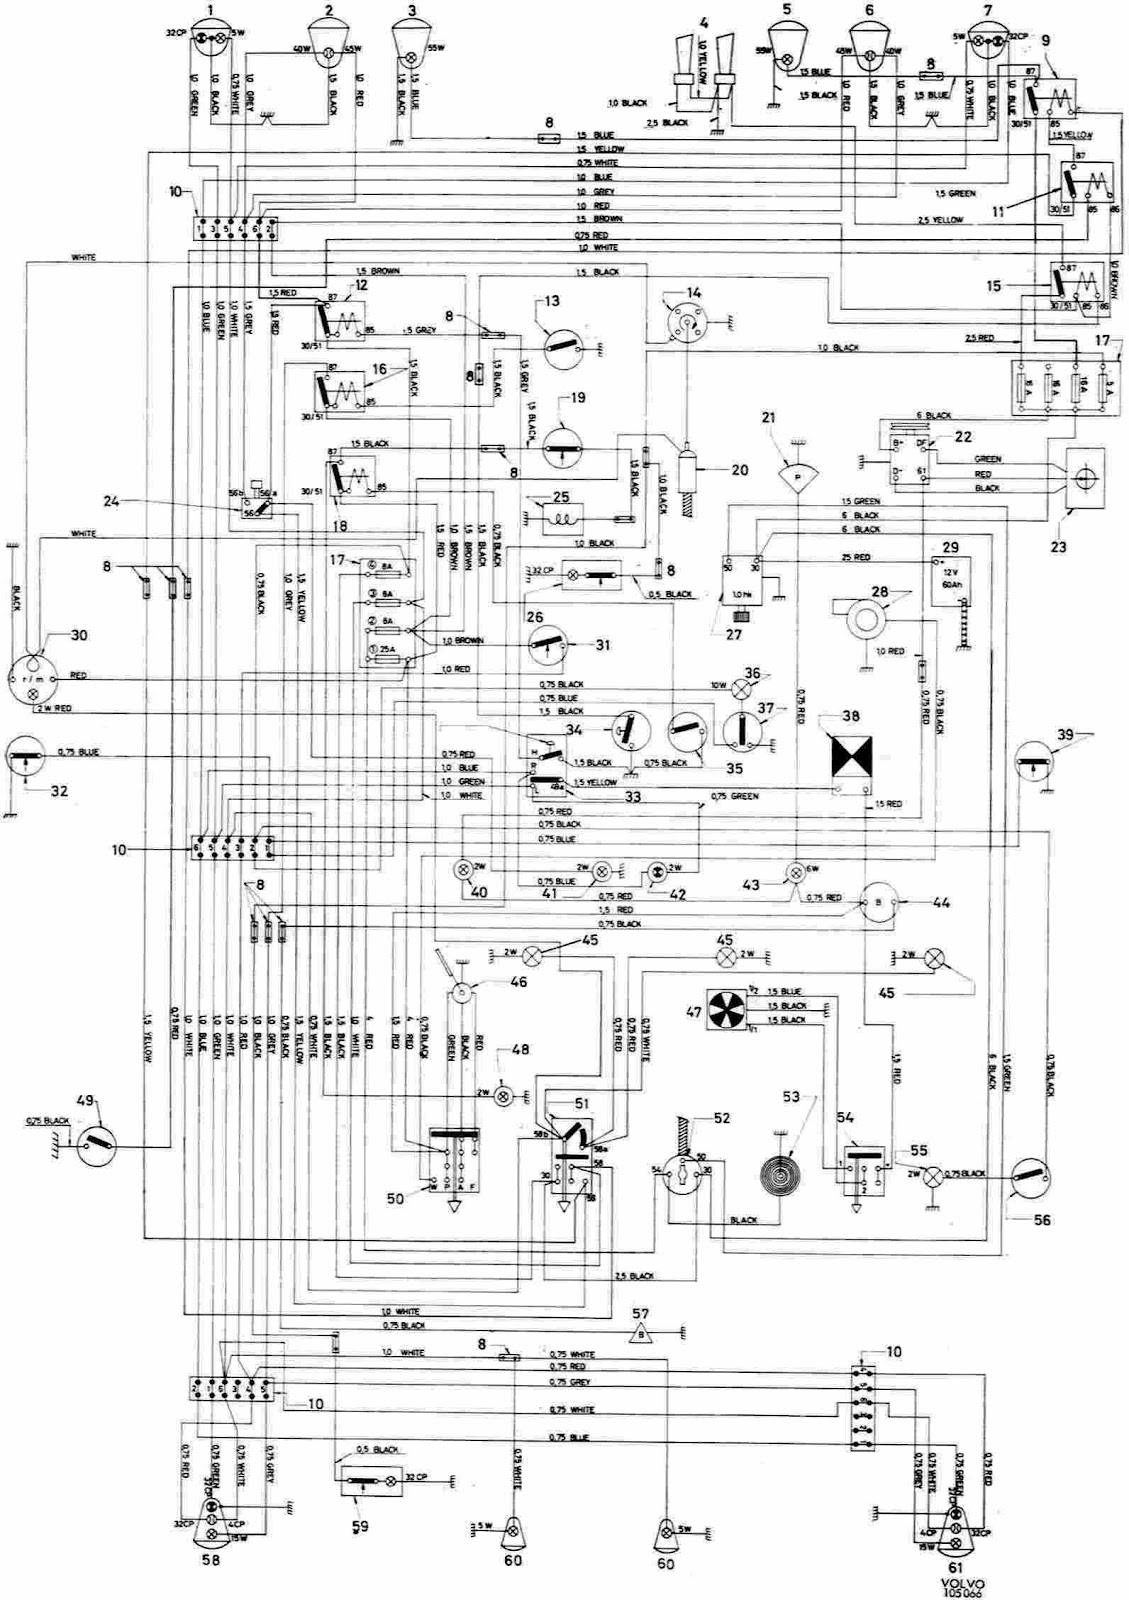 hight resolution of volvo 123 gt complete wiring diagram volvo v70 1998 wiring diagram pdf repair